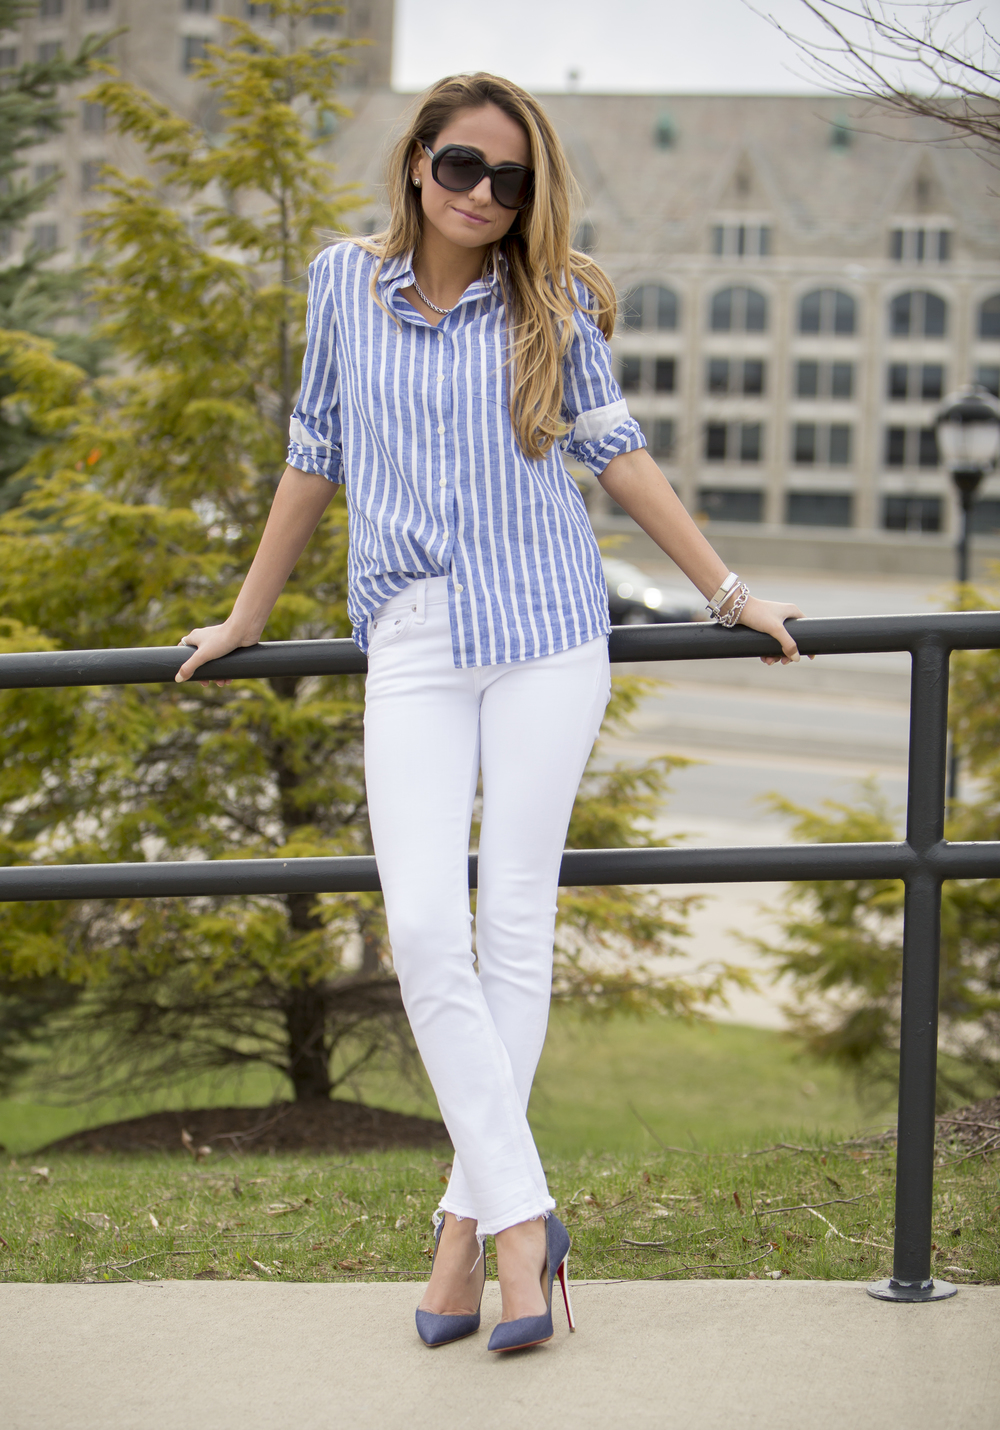 Jeans:  Rag&Bone  |Shirt:  JCrew  |Pumps:  Christian Louboutin